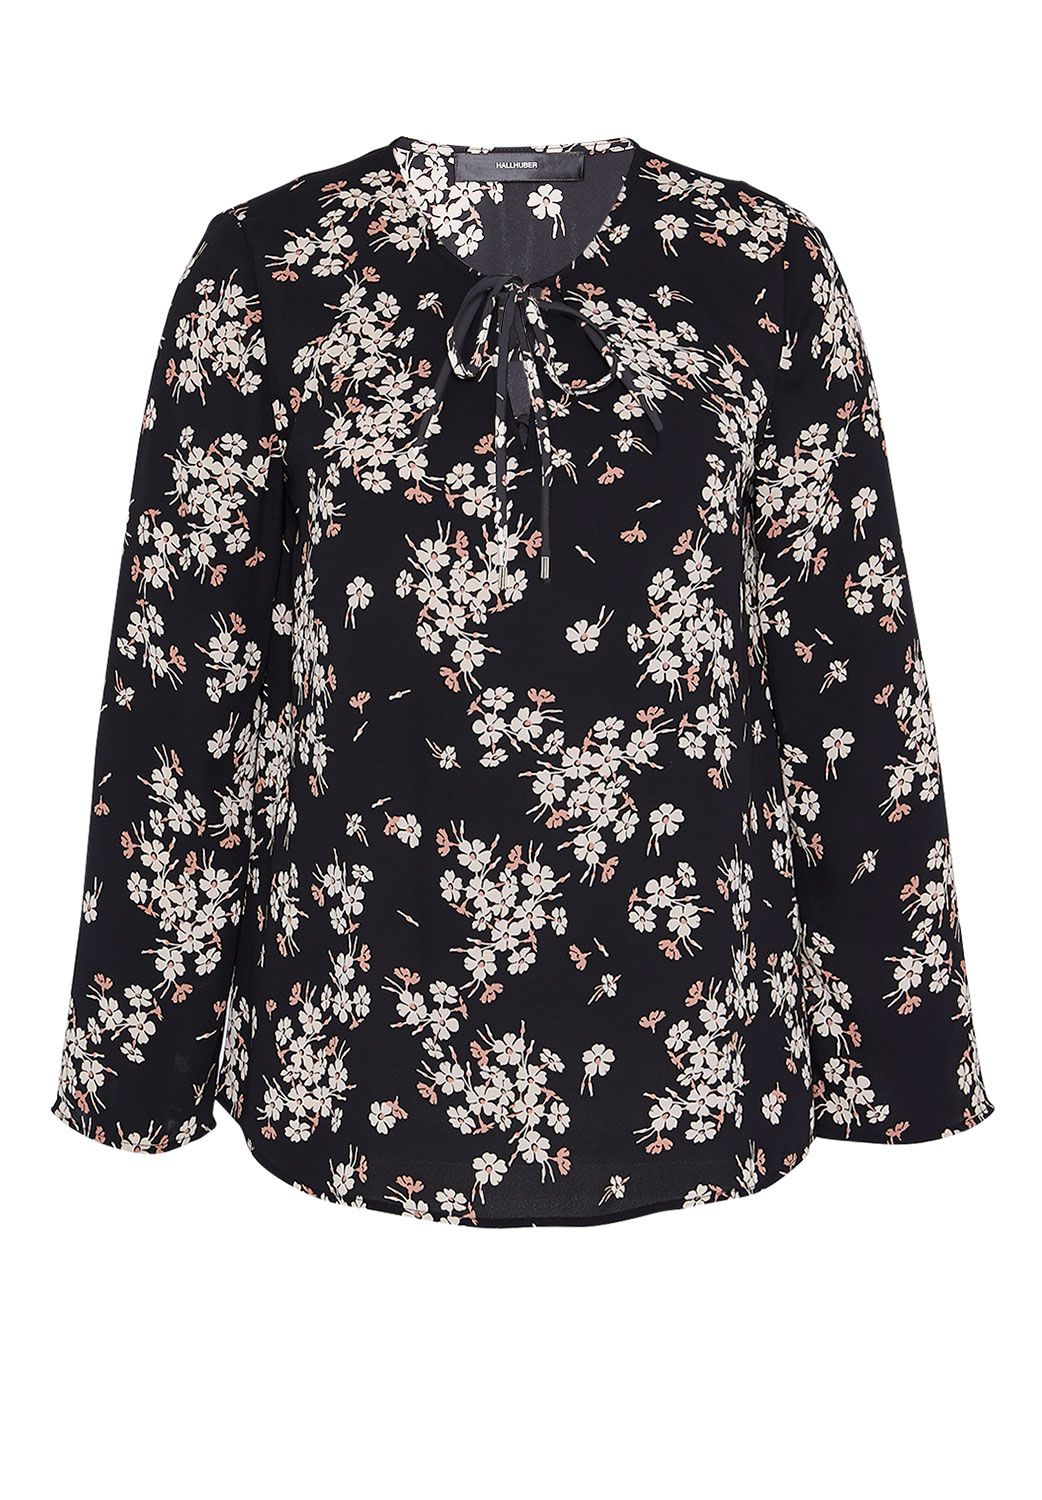 Hallhuber Swinging Blouse With Floral Print, Multi-Coloured